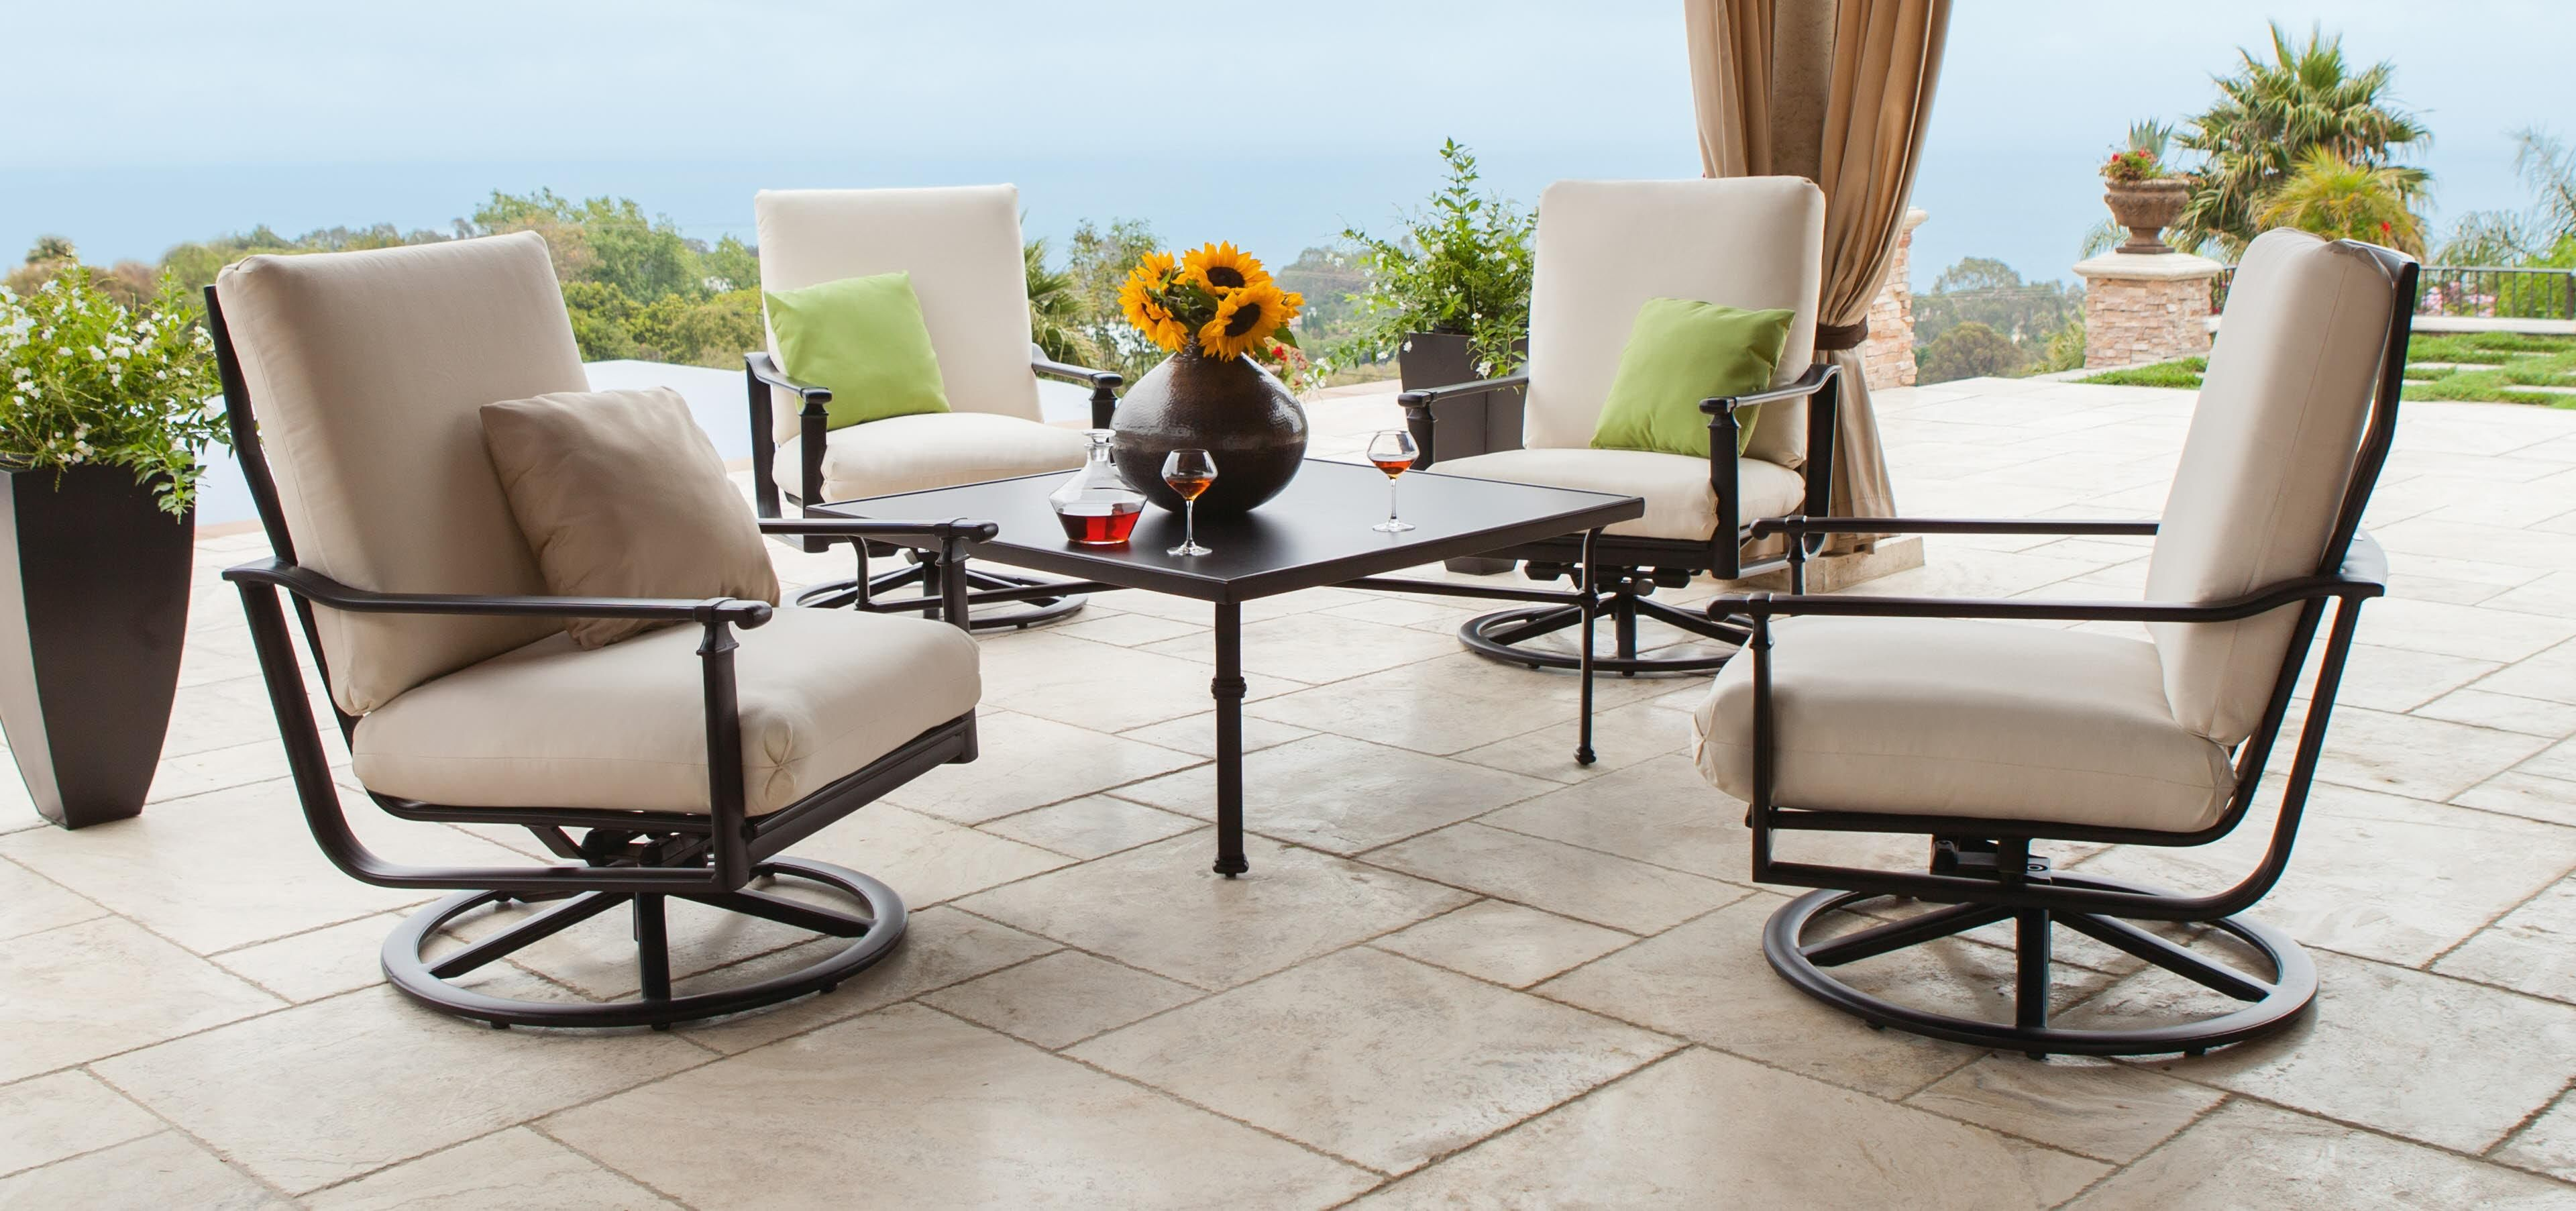 Fremont Cushion Collection | Outdoor Furniture | Brown ...